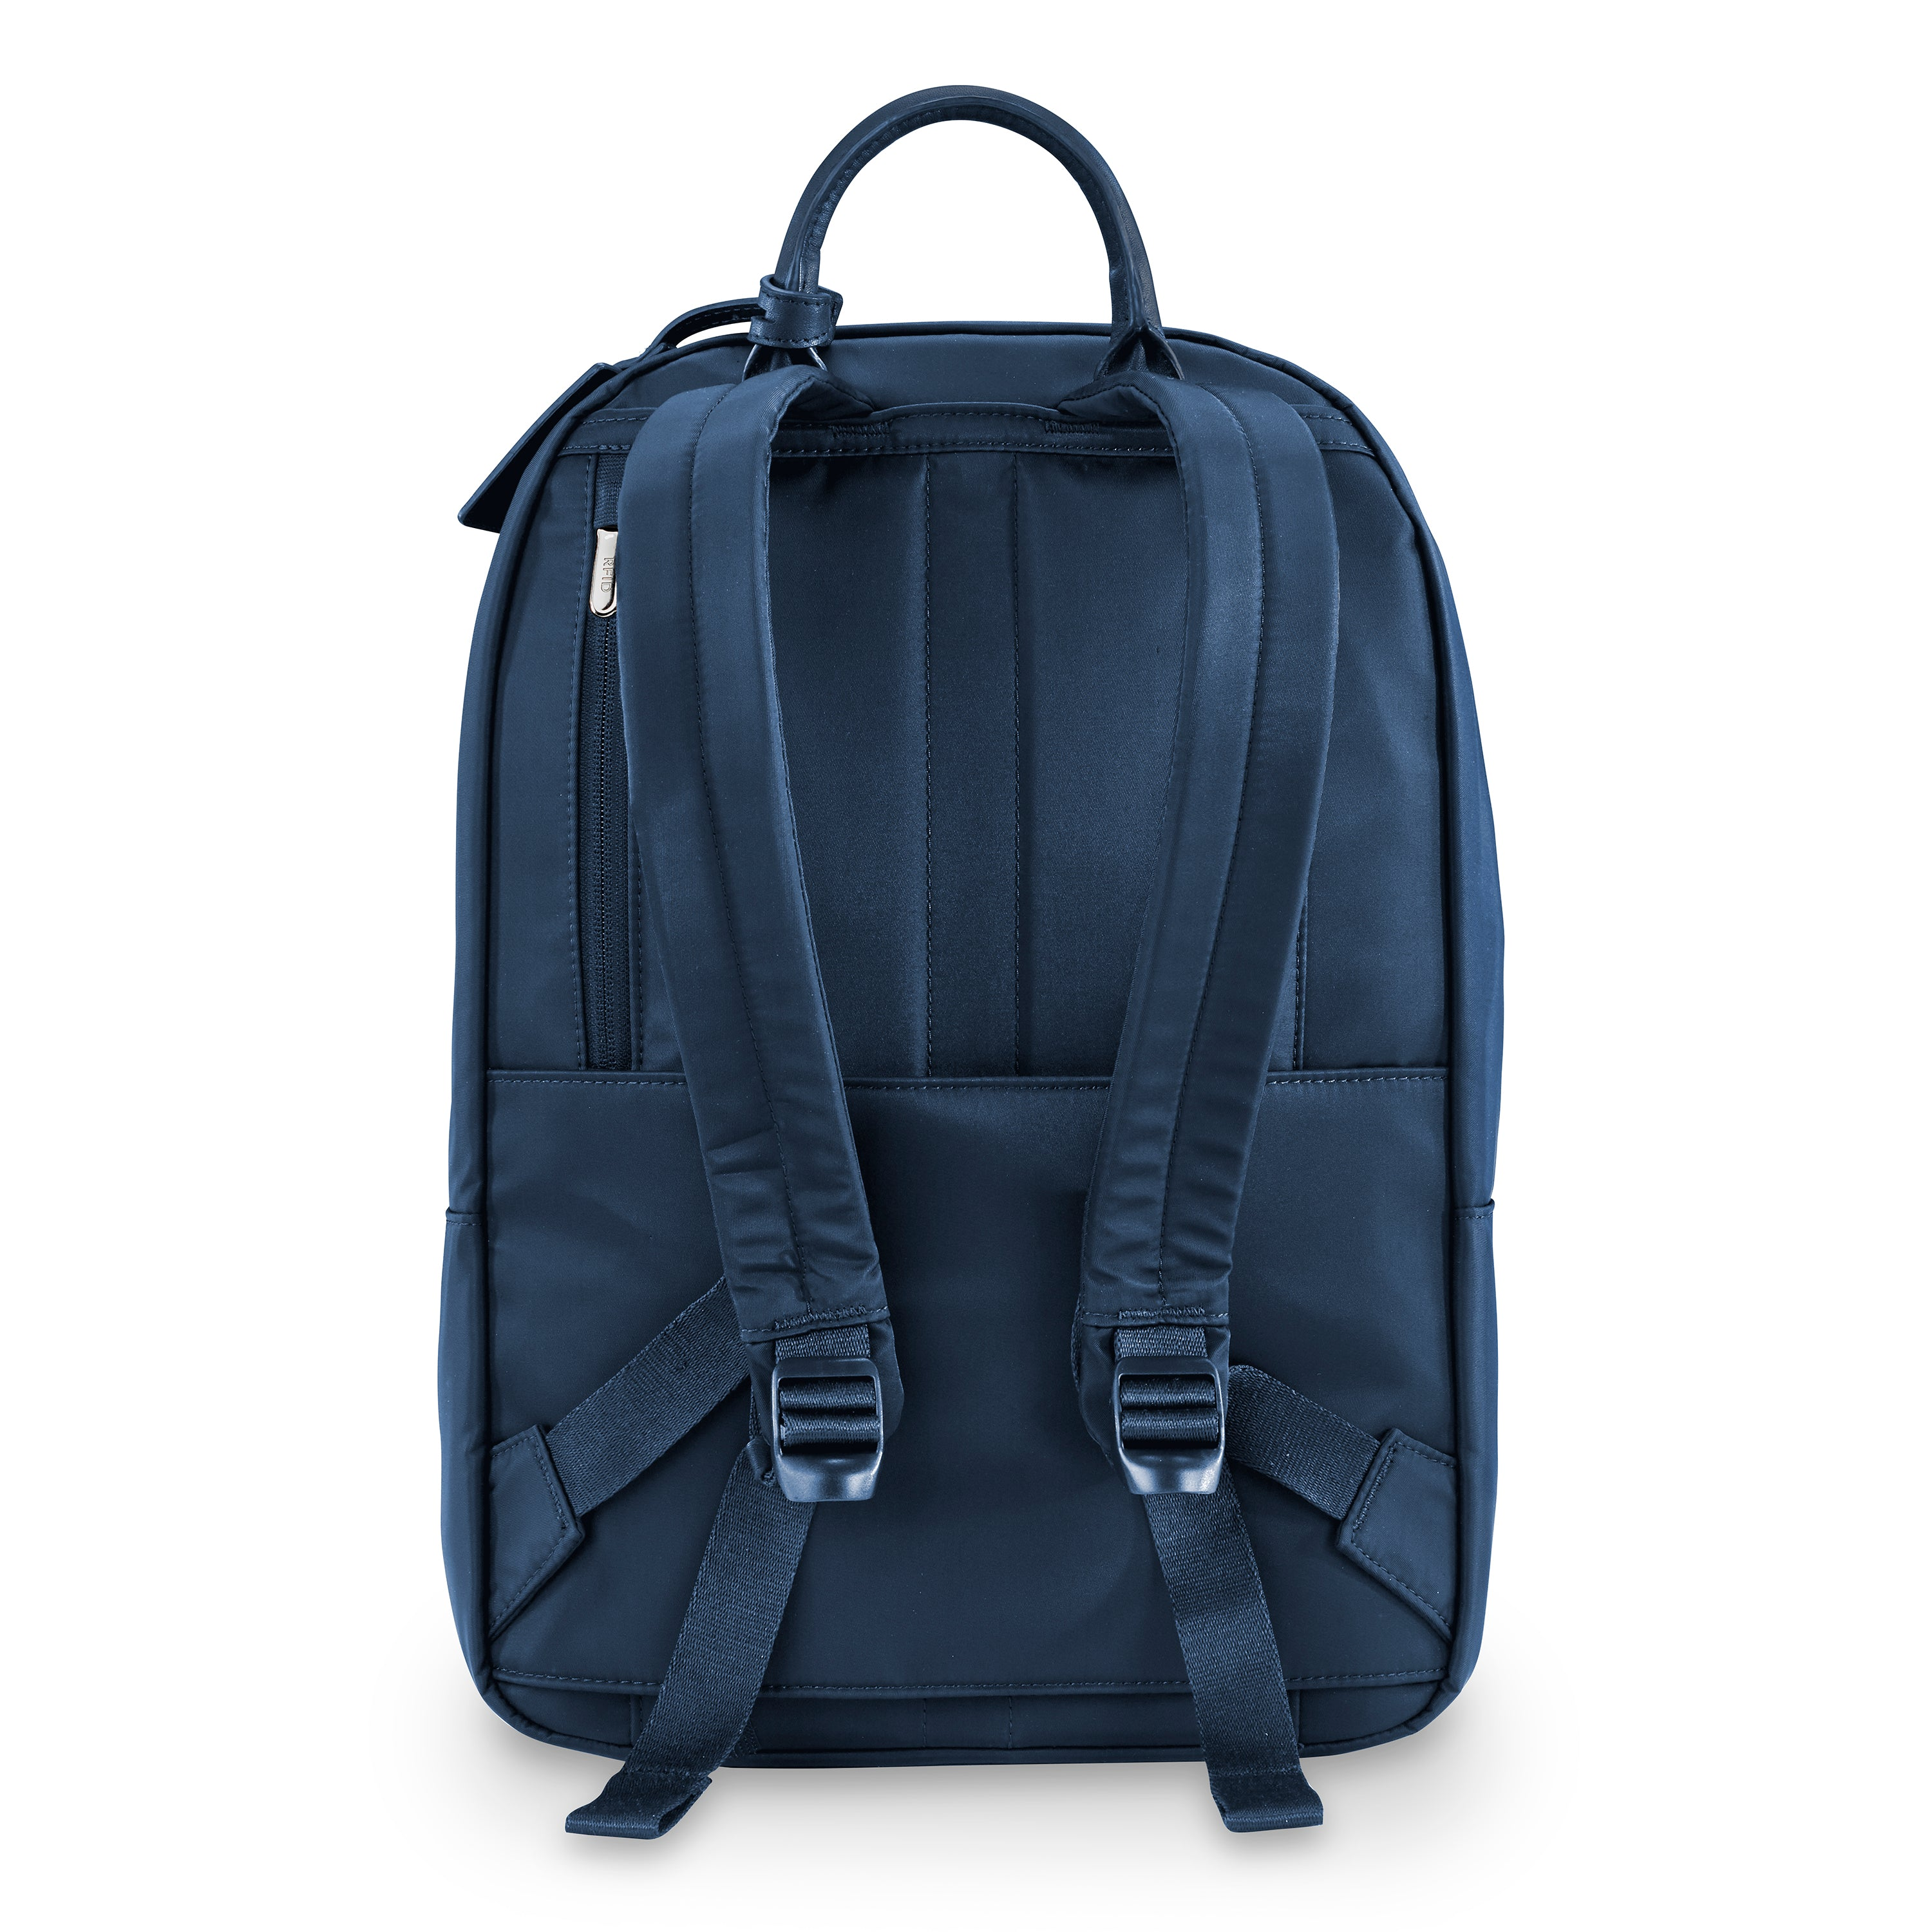 Briggs & Riley Rhapsody Essential Backpack - Navy